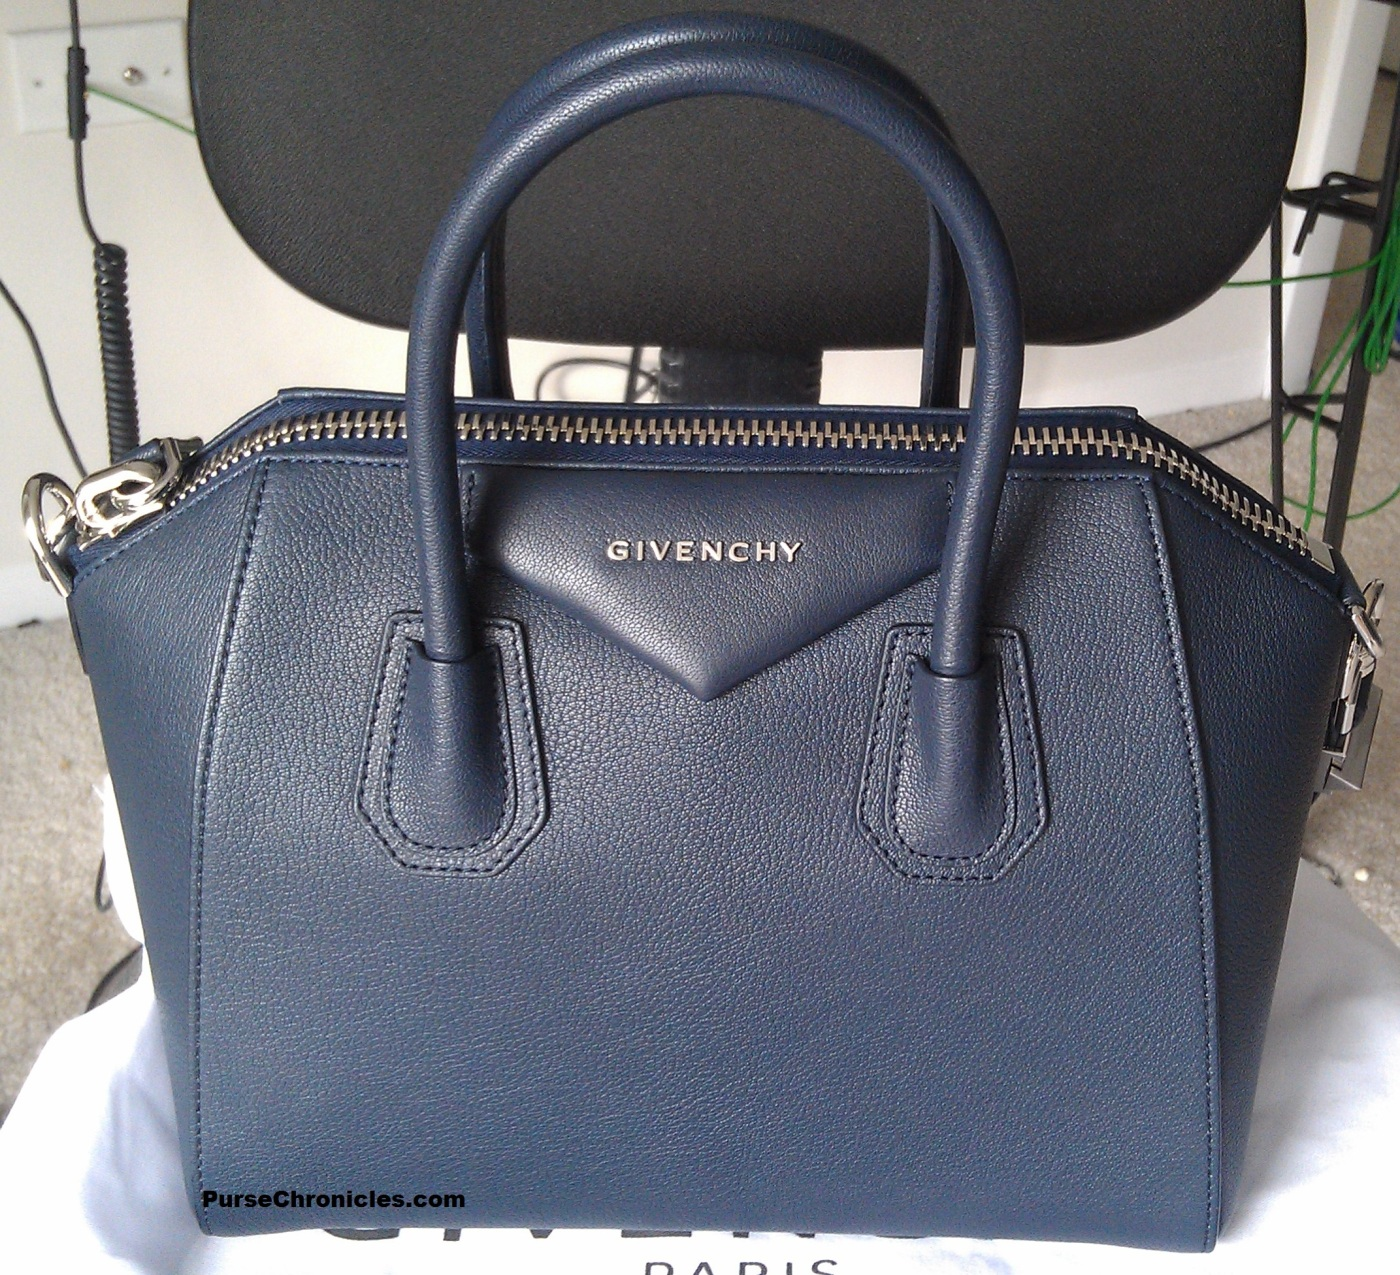 4d0d6e81e8 Bag Review  Givenchy Antigona